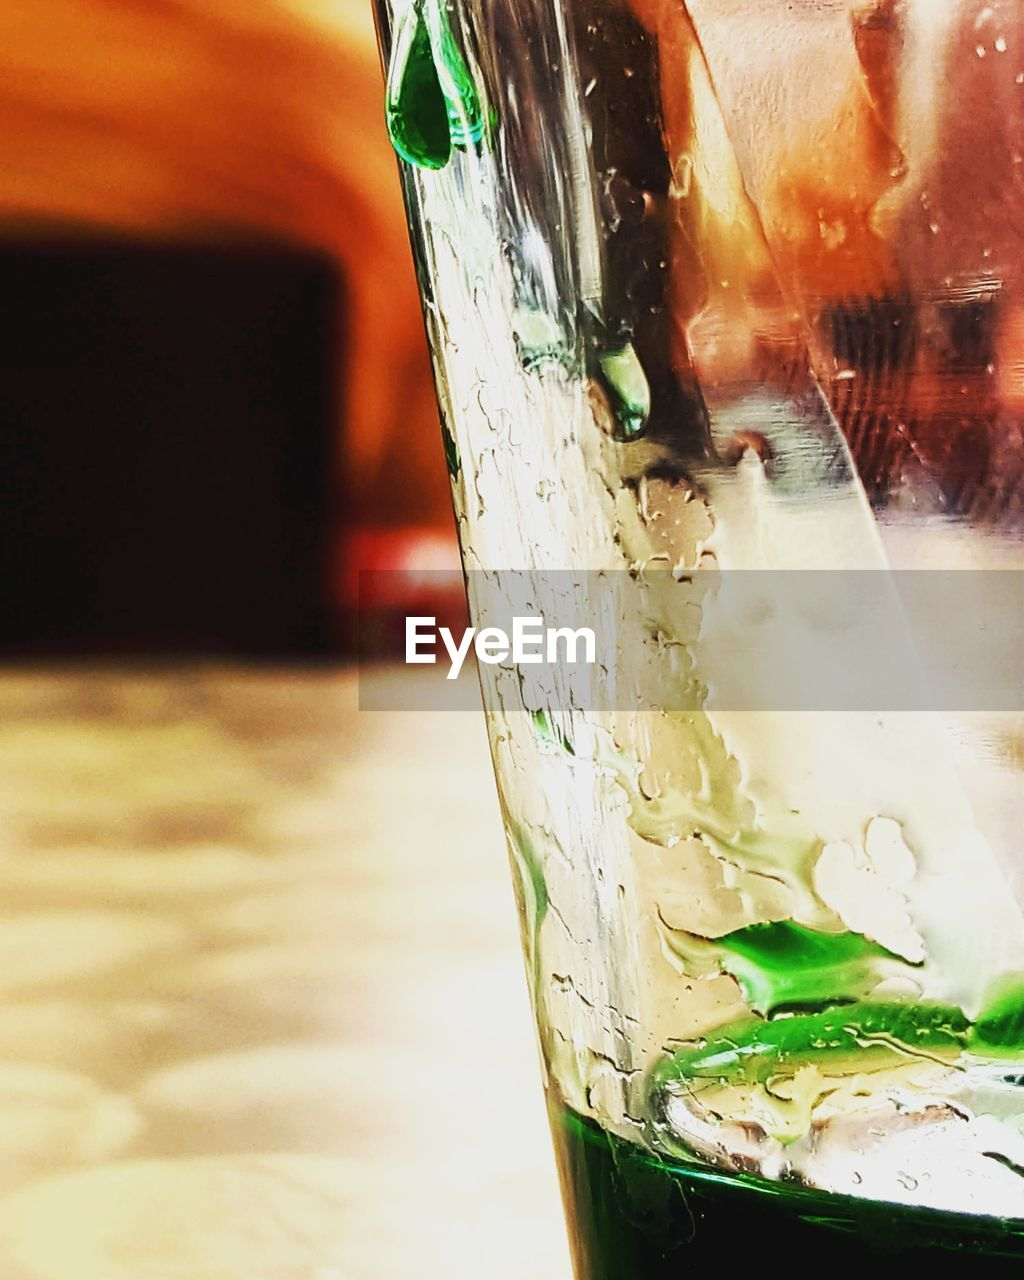 drink, food and drink, glass, refreshment, drinking glass, close-up, household equipment, table, glass - material, focus on foreground, no people, indoors, freshness, still life, food, transparent, alcohol, healthy eating, green color, non-alcoholic beverage